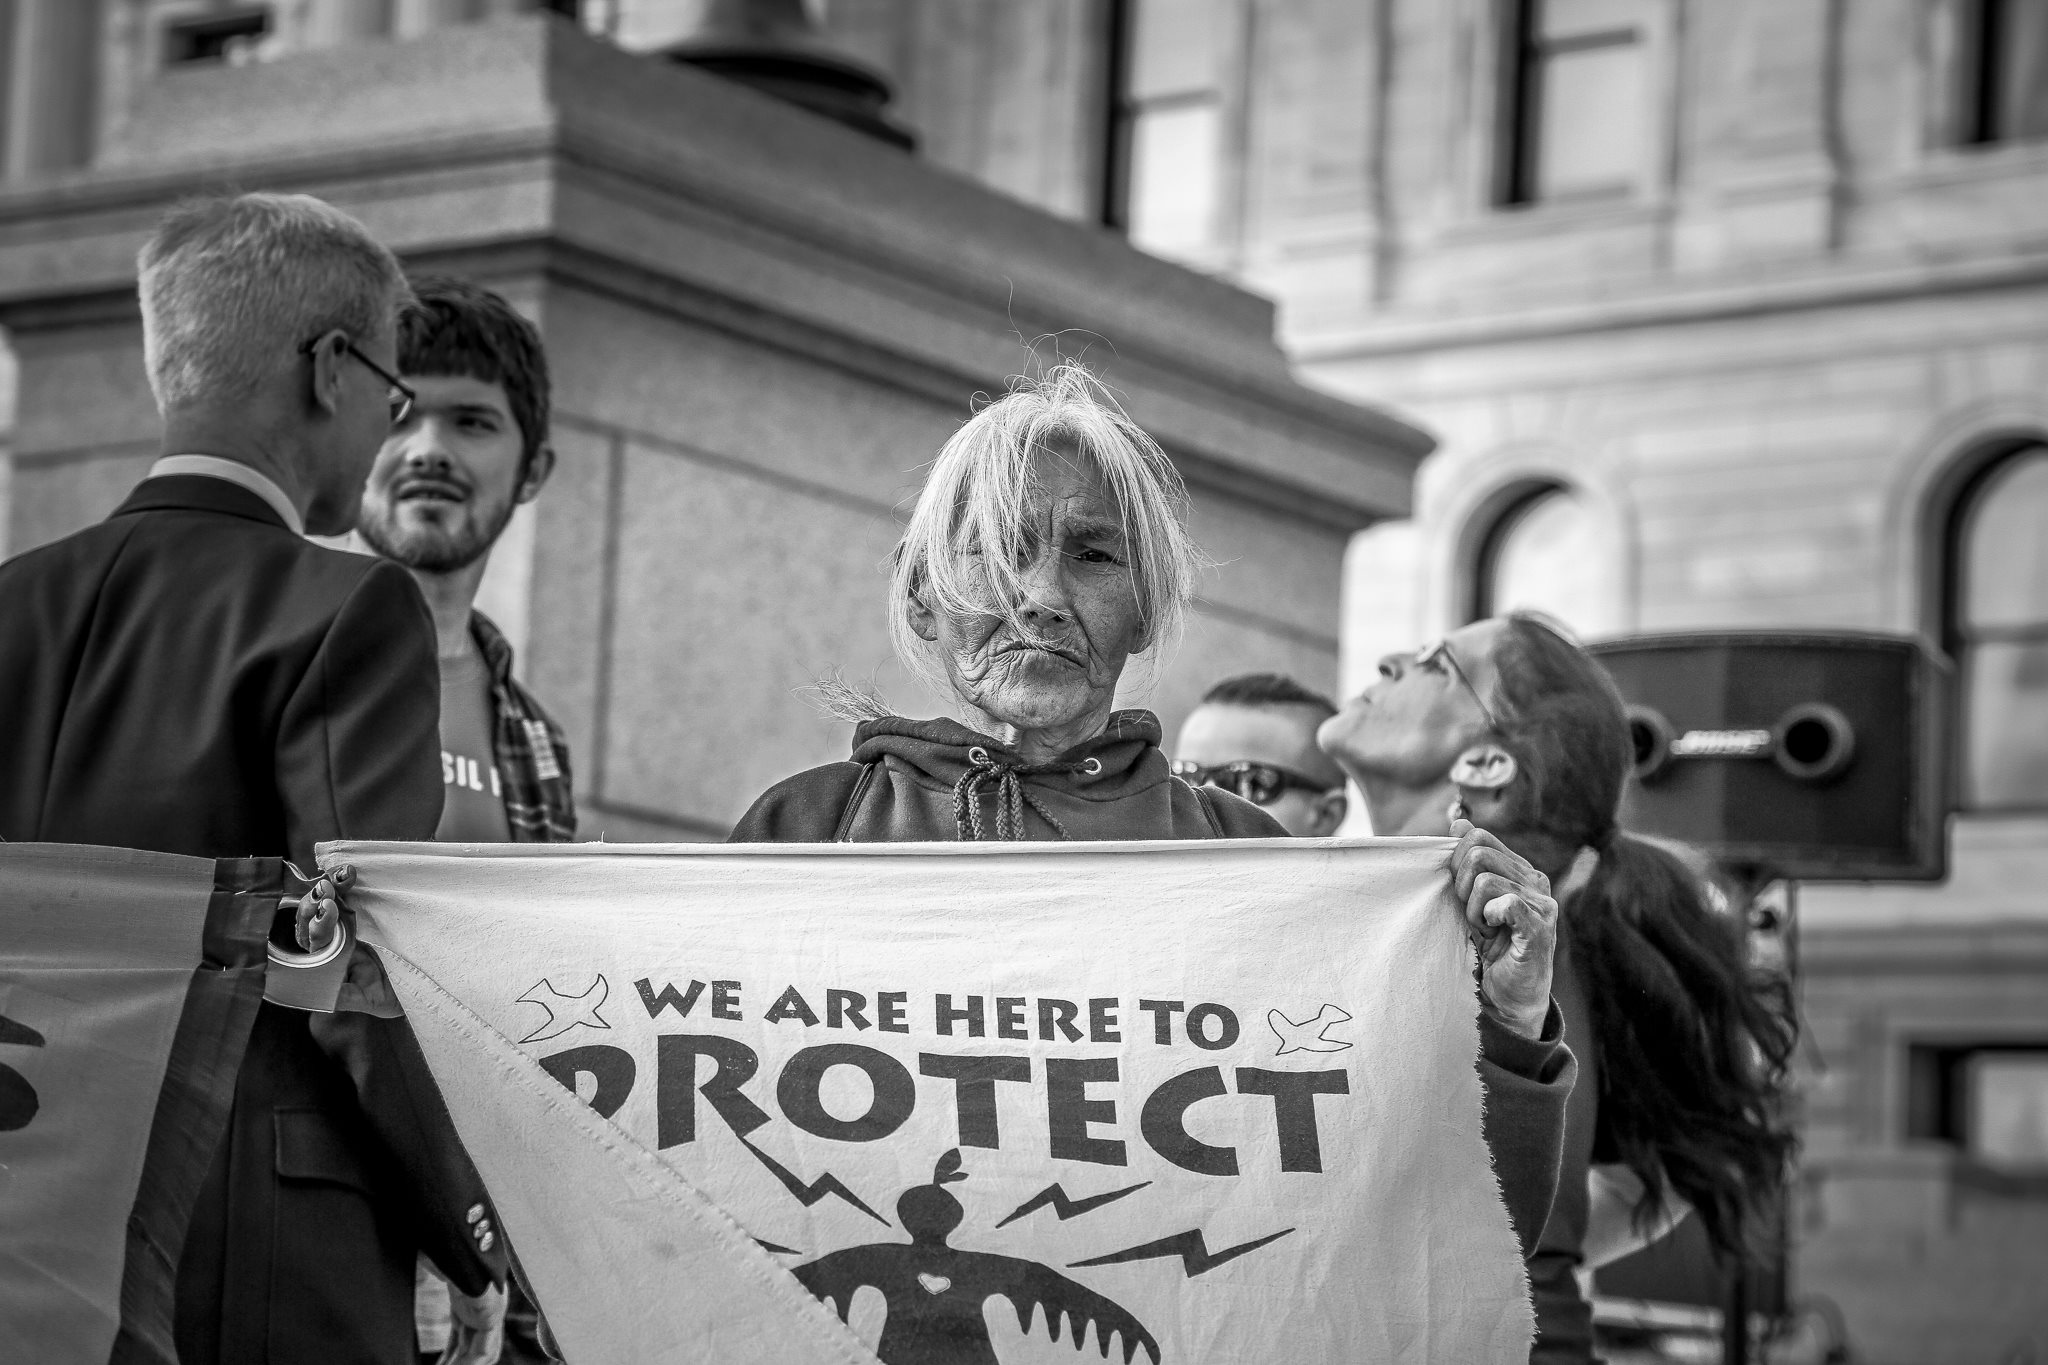 September 28, 2017 Opponents of proposed Line 3 gathered outside the Minnesota State Capitol. Photo by Rob Wilson